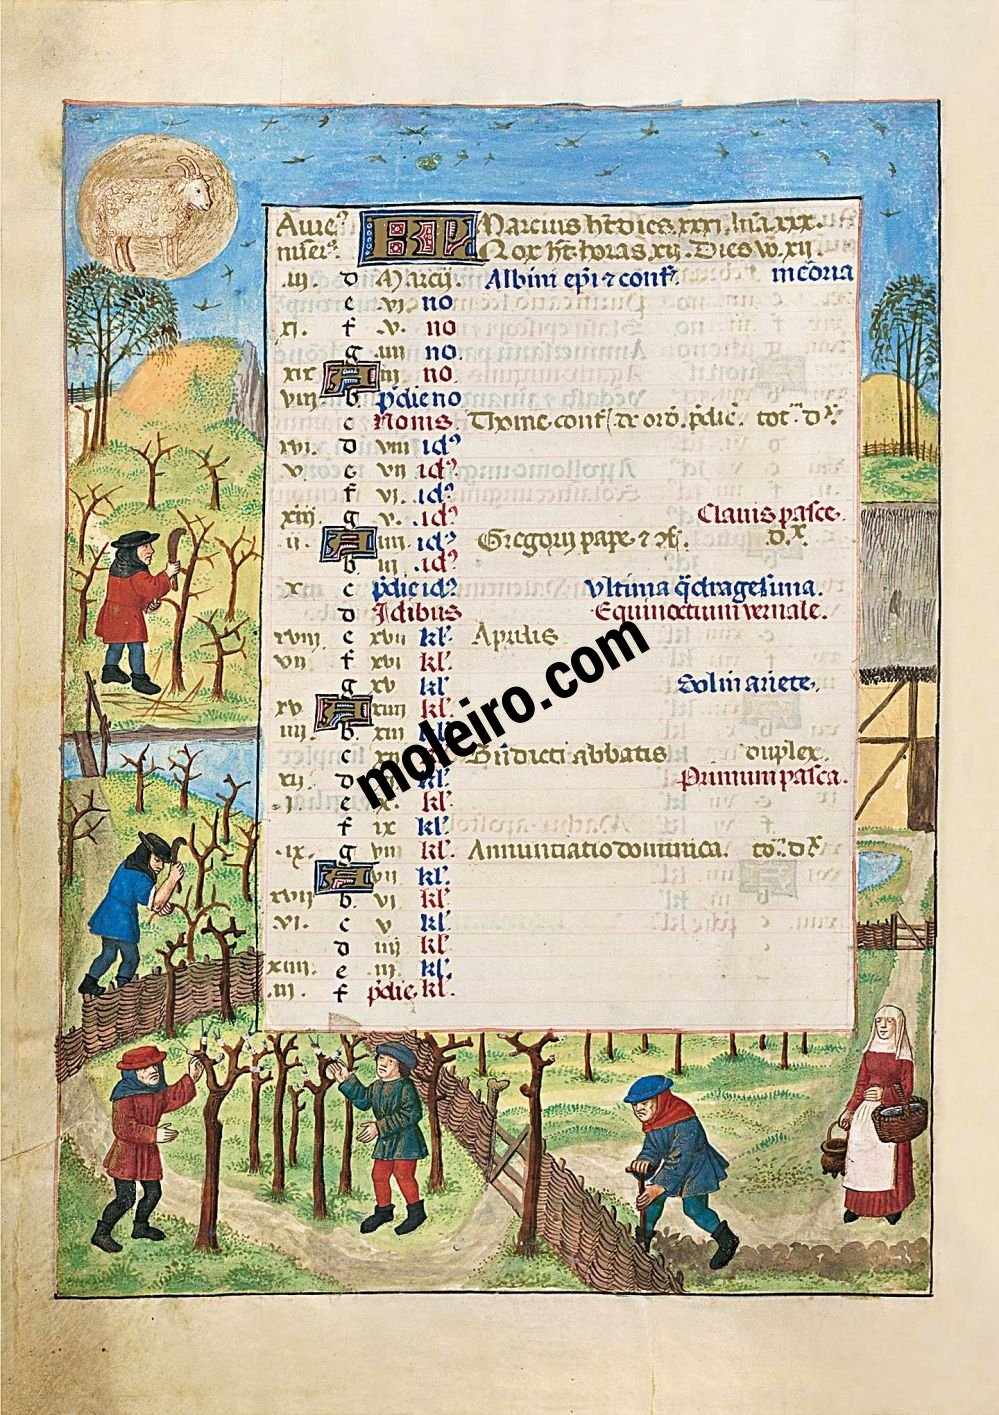 The Isabella Breviary f. 2v, March